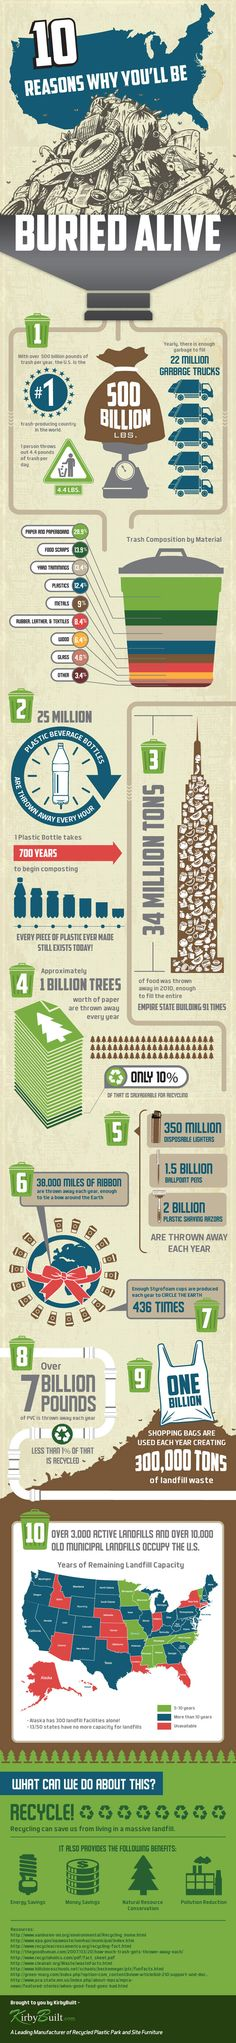 KirbyBuilt, Buried Alive Infographic, waste infographic, waste issues, trash issues, pollution, trash and the environment, trash, litter, environmental destruction Conservation, Giving, Connection